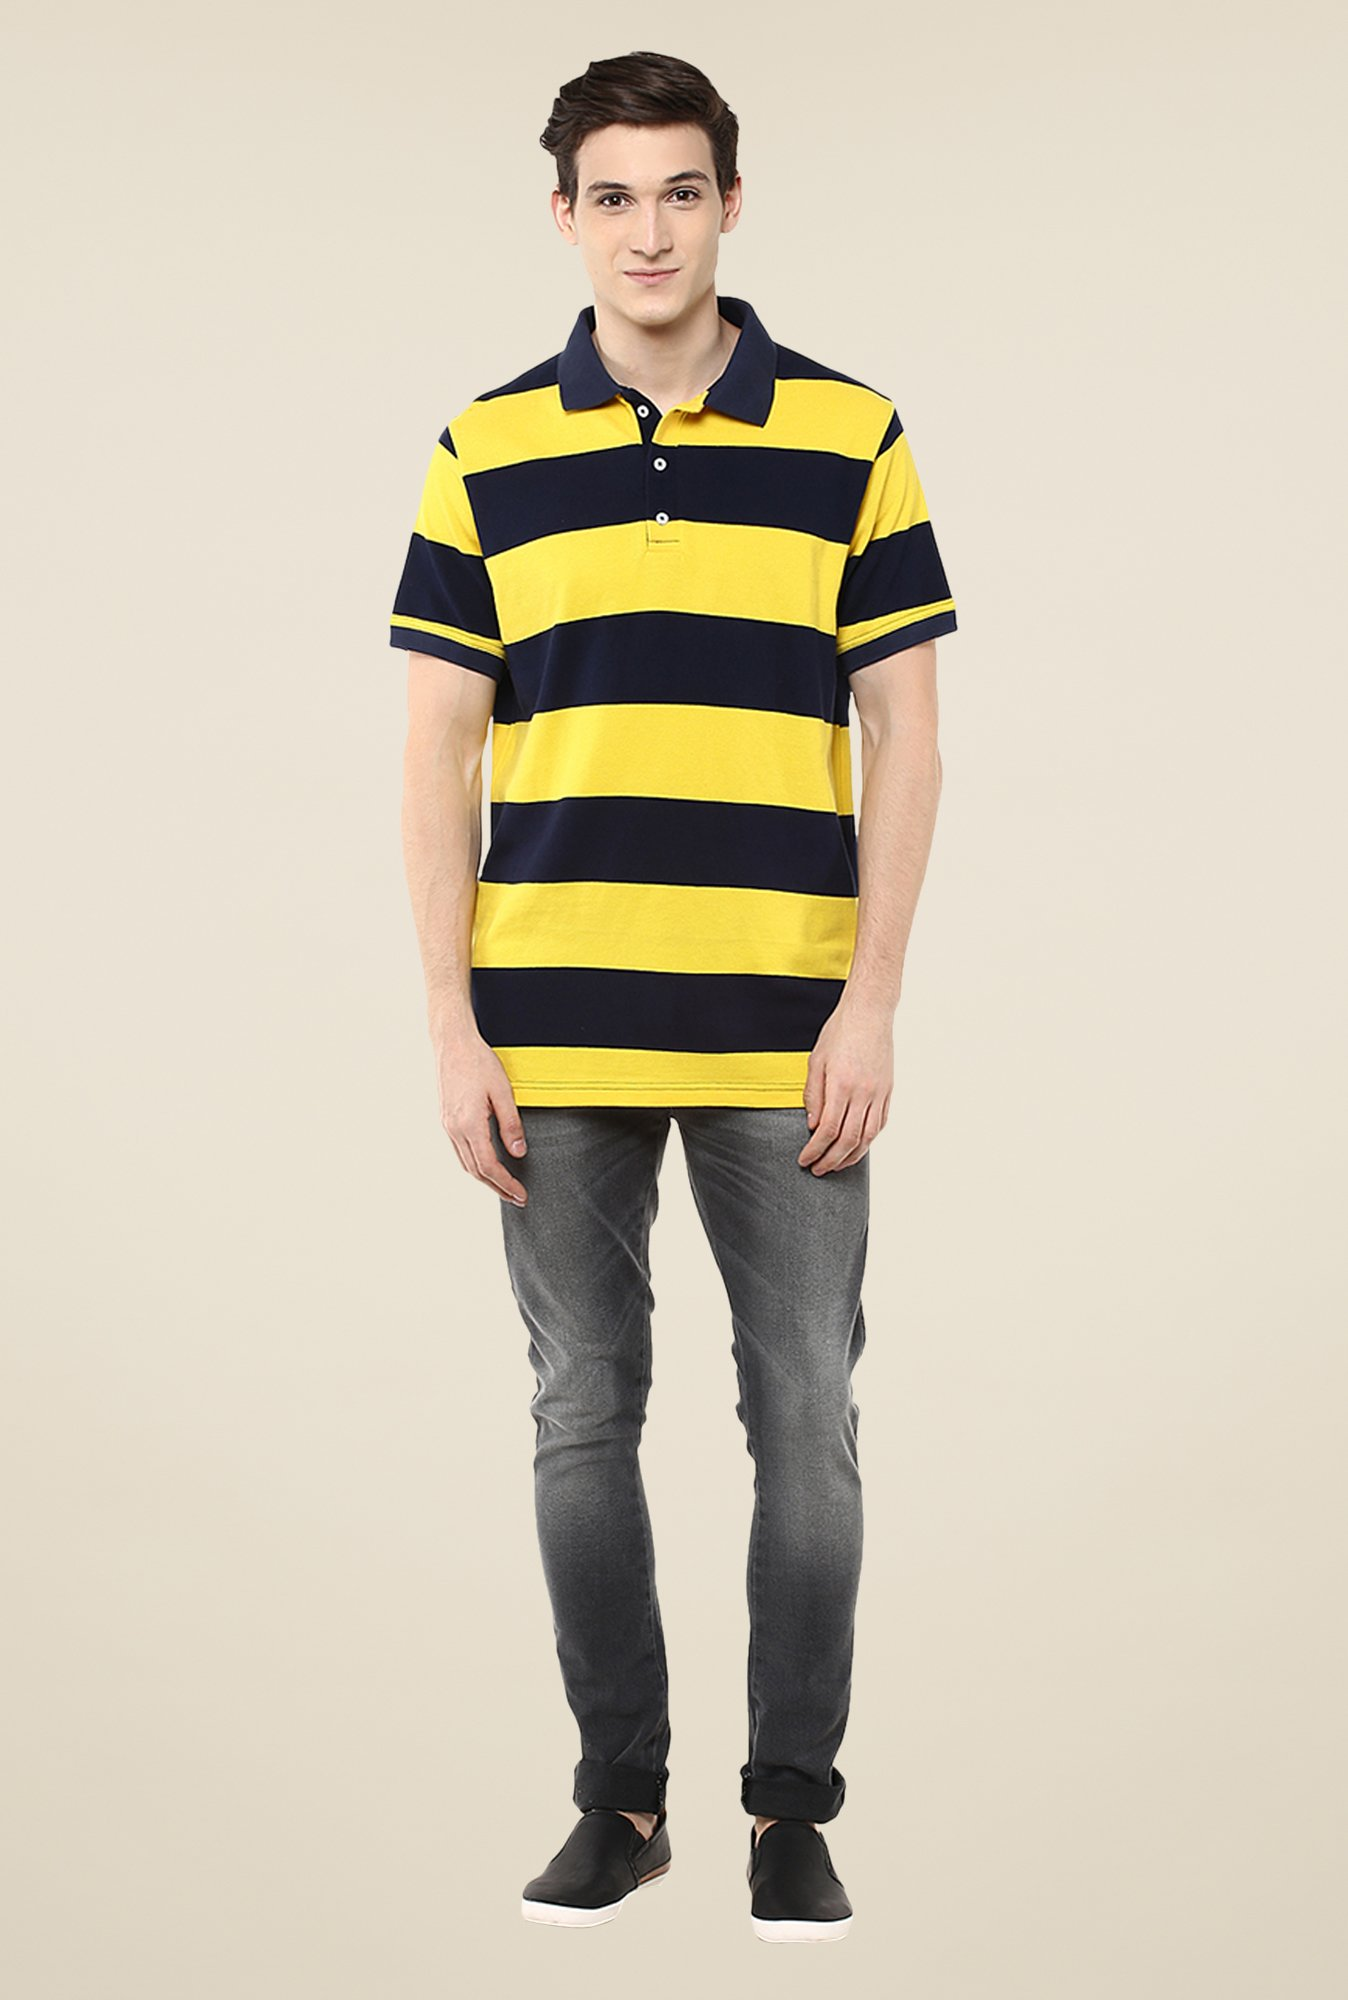 Yepme Yellow & Navy Brock Striped Polo T Shirt